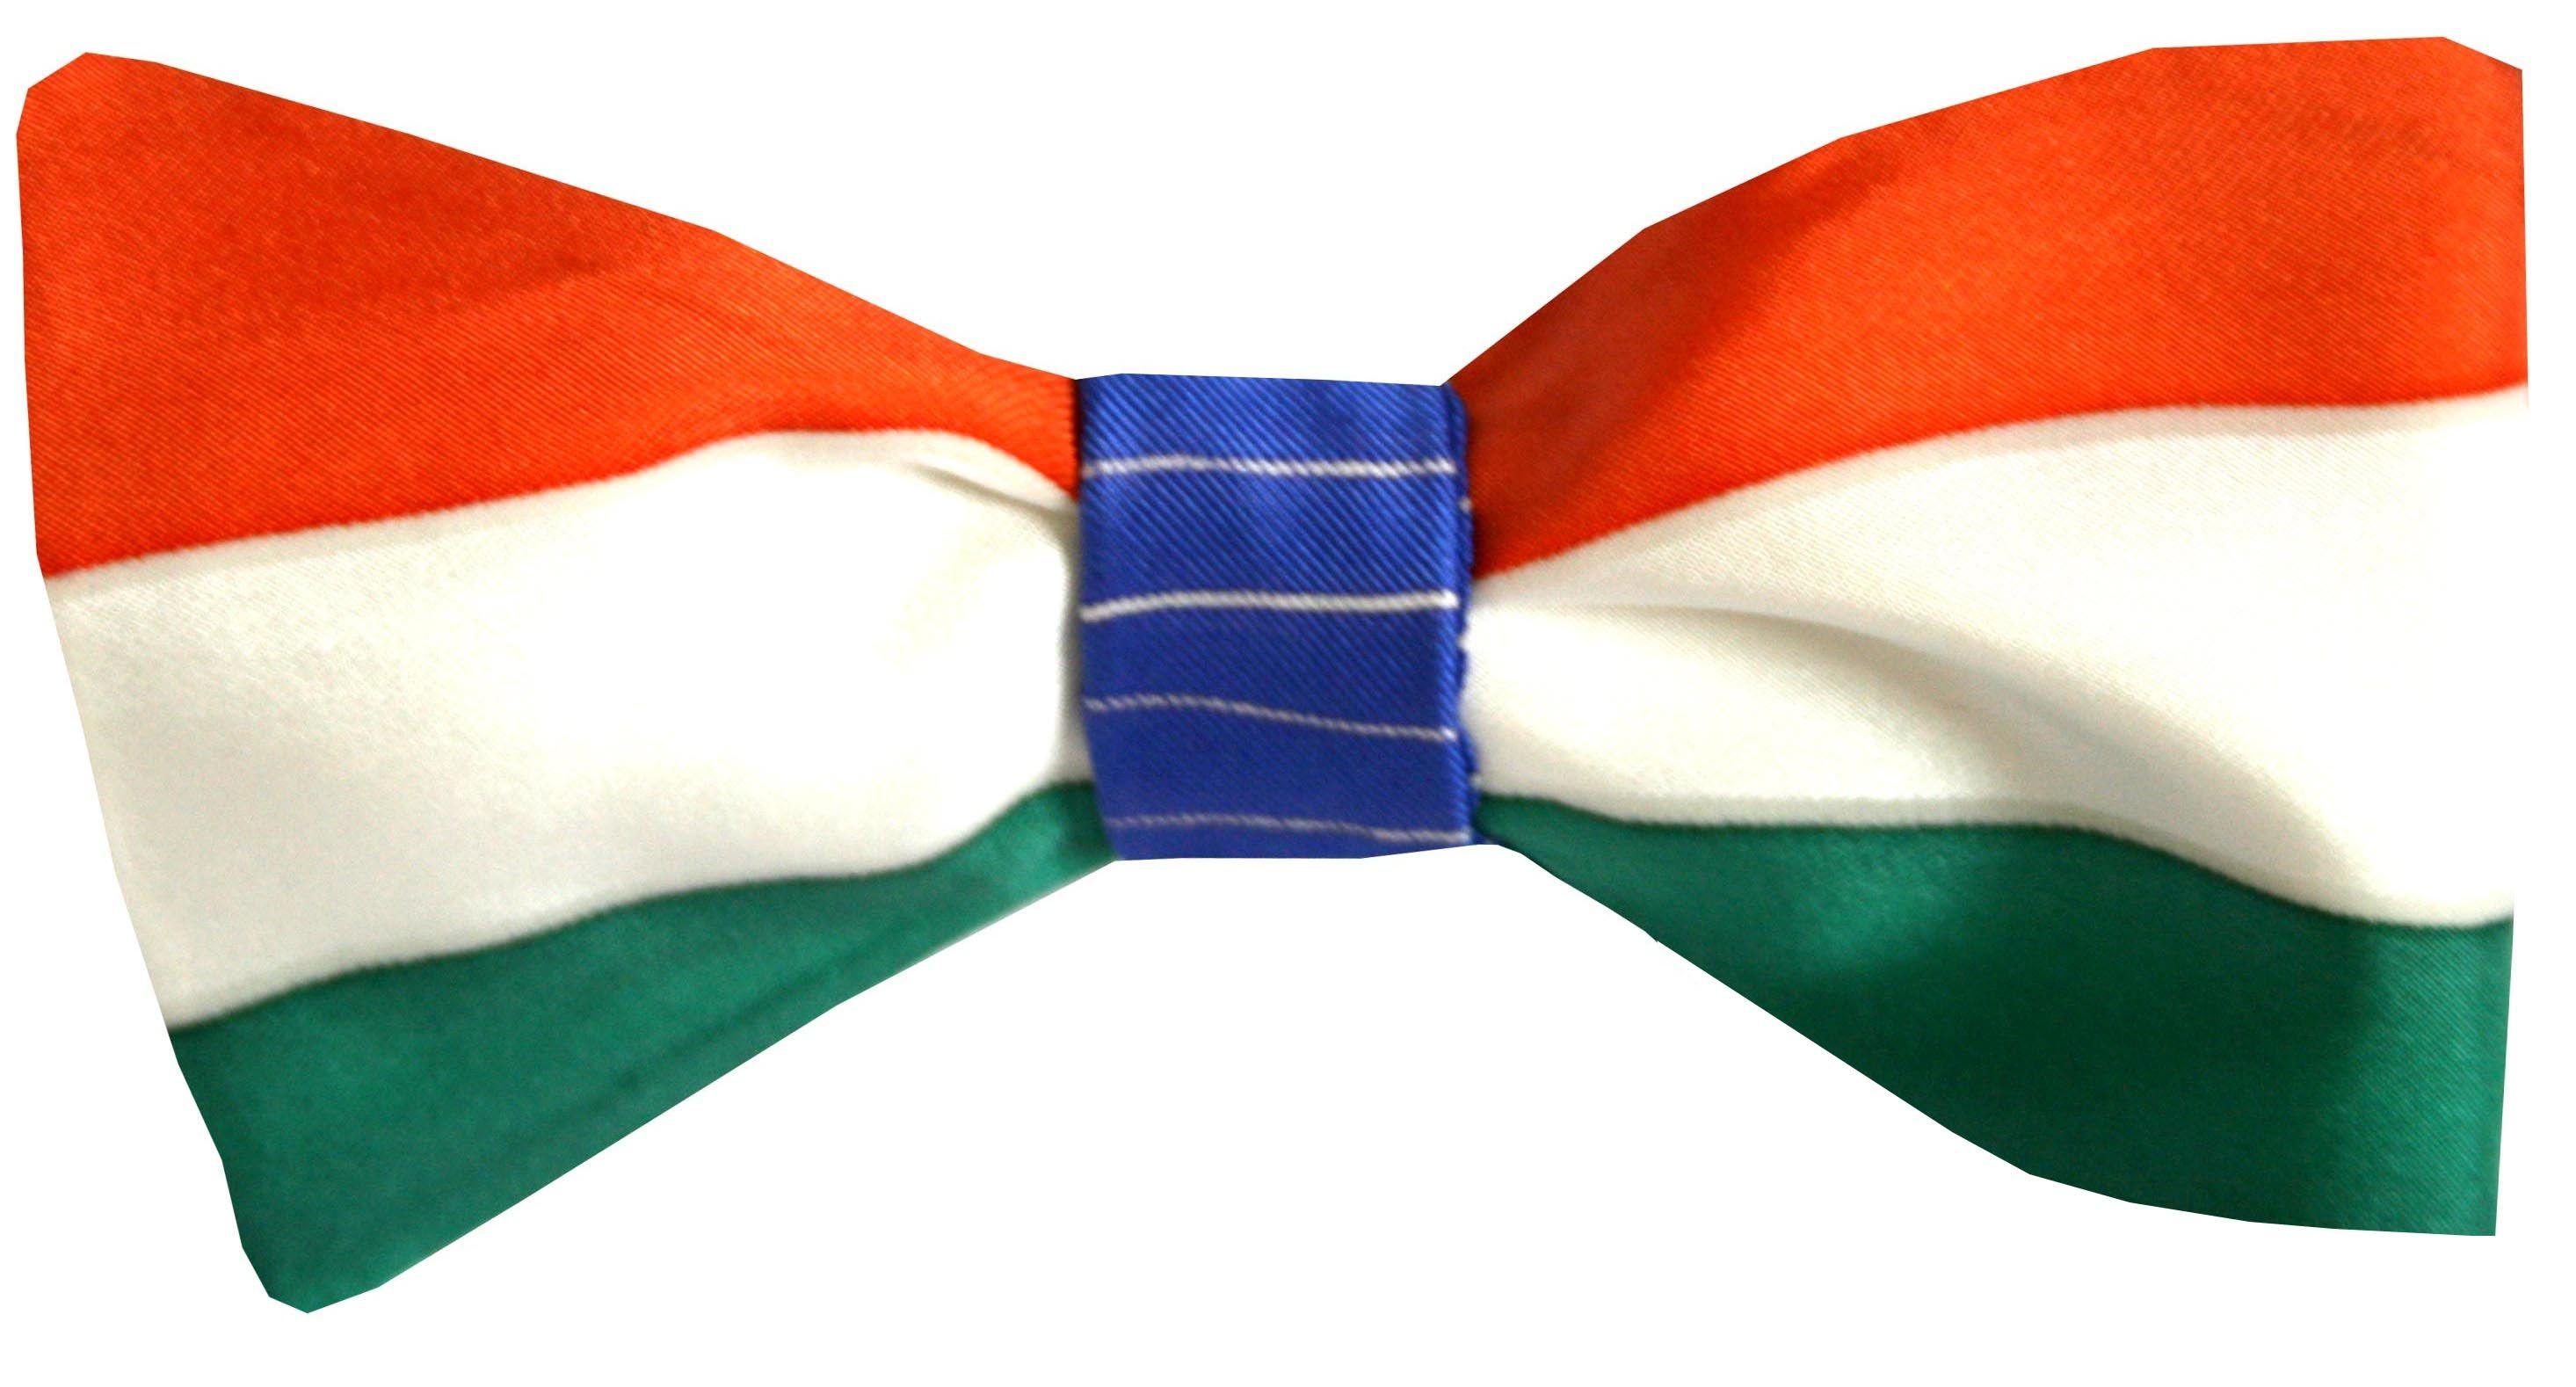 b3f0ac6fe09f Indian Bow Tie Company. Subscribe to our newsletter to receive news,  updates, free